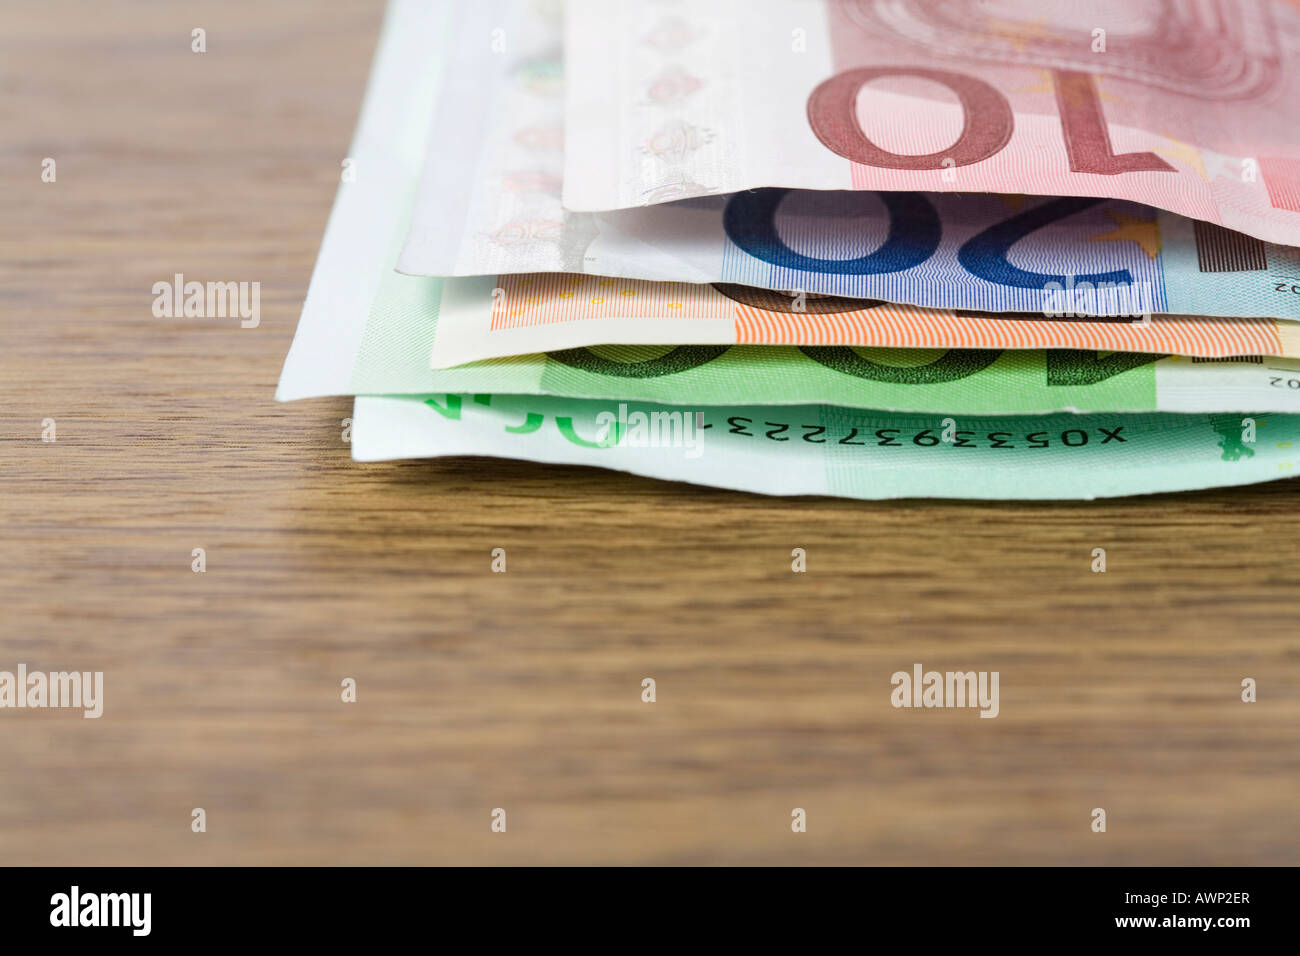 Euro notes on a table - Stock Image